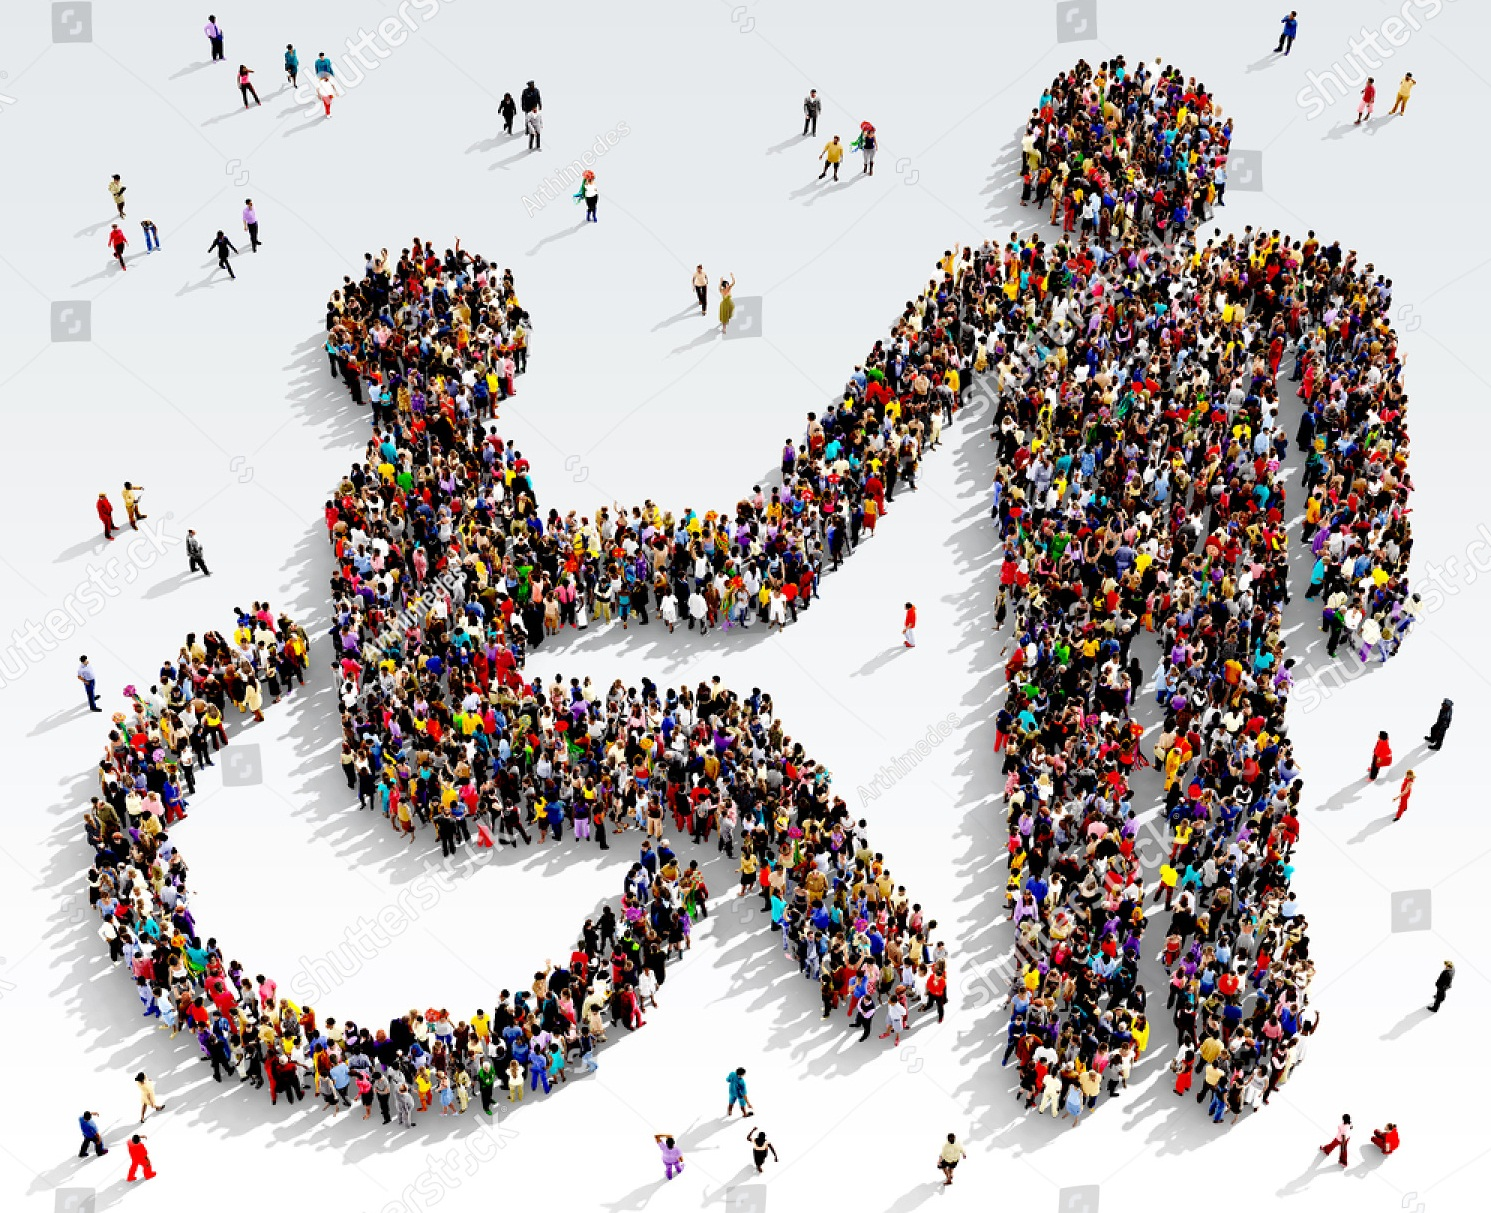 stock-photo-large-and-diverse-group-of-people-seen-from-above-gathered-together-in-the-shape-of-disabled-465002885